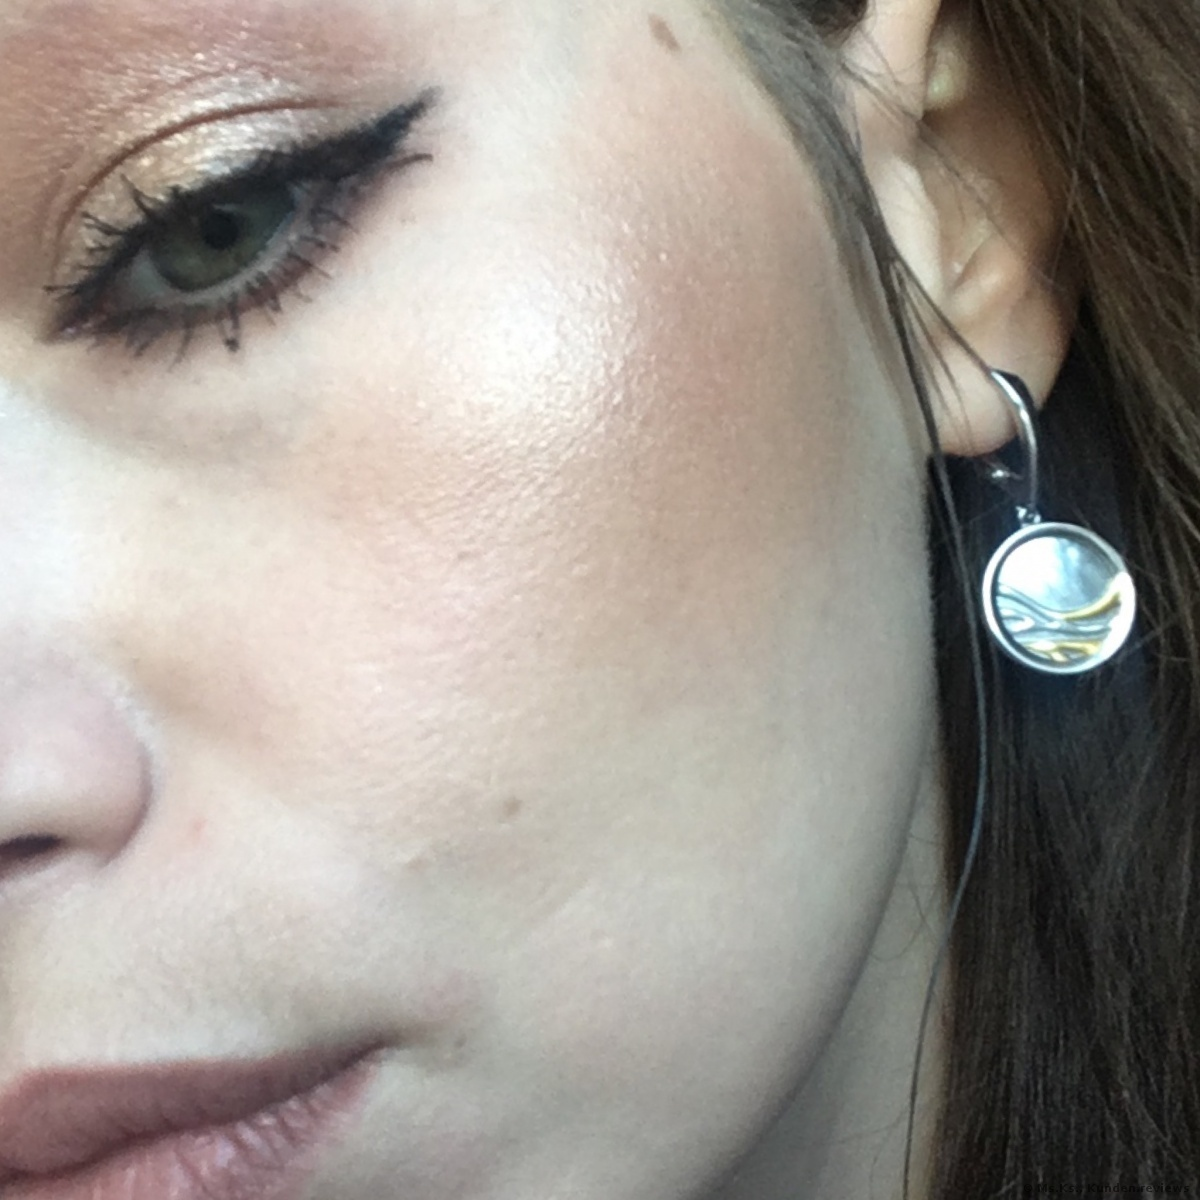 DIOR DIORSKIN MINERAL NUDE HIGHLIGHTER